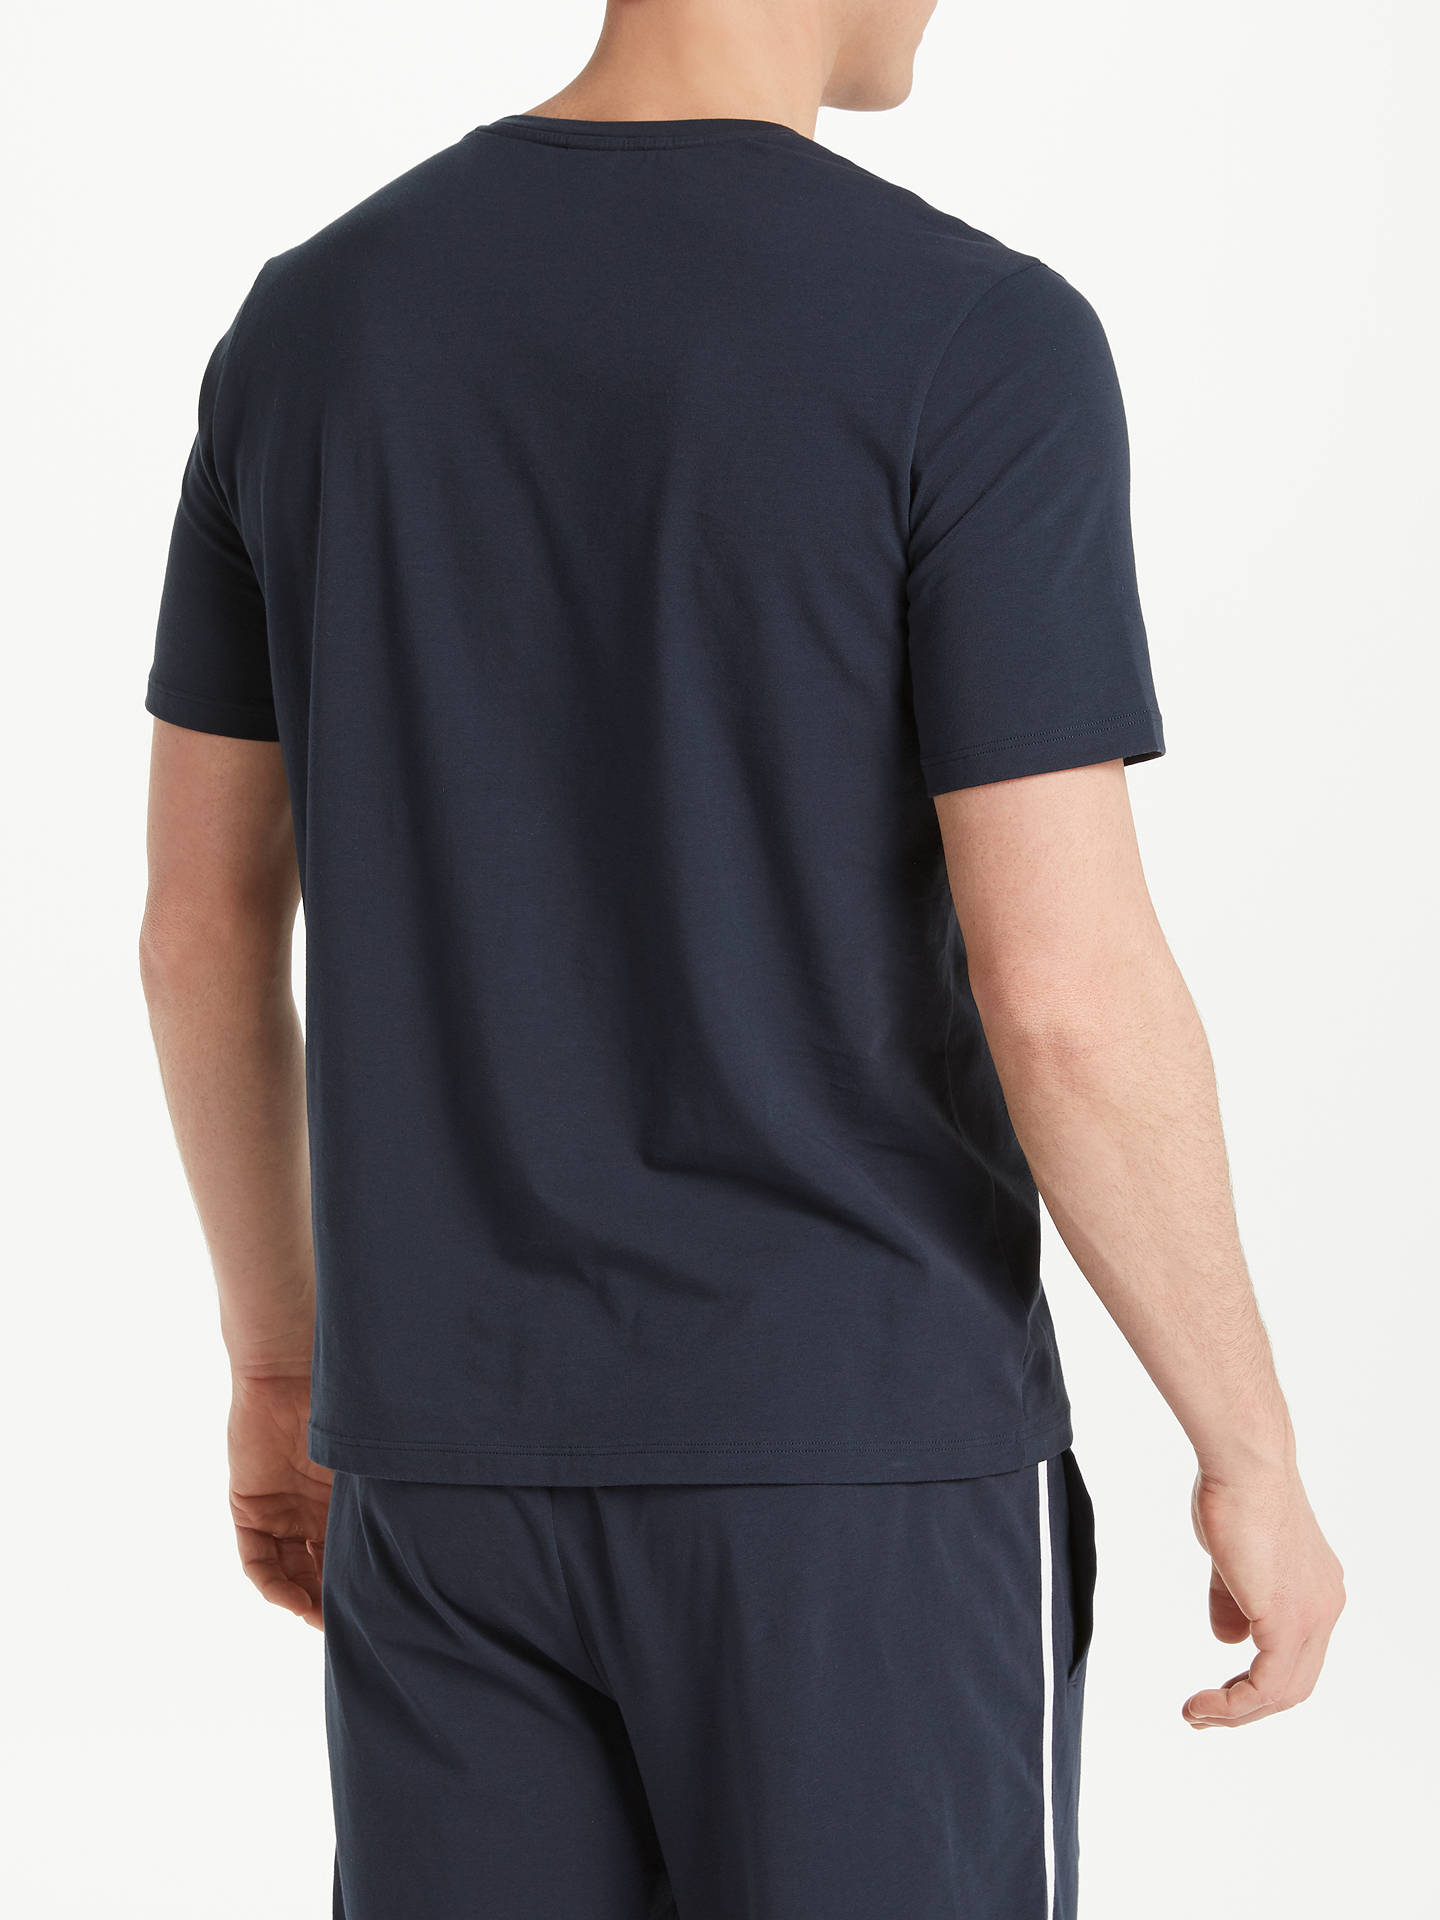 BuyBOSS Stretch Cotton Logo Pyjama T-Shirt, Navy, S Online at johnlewis.com